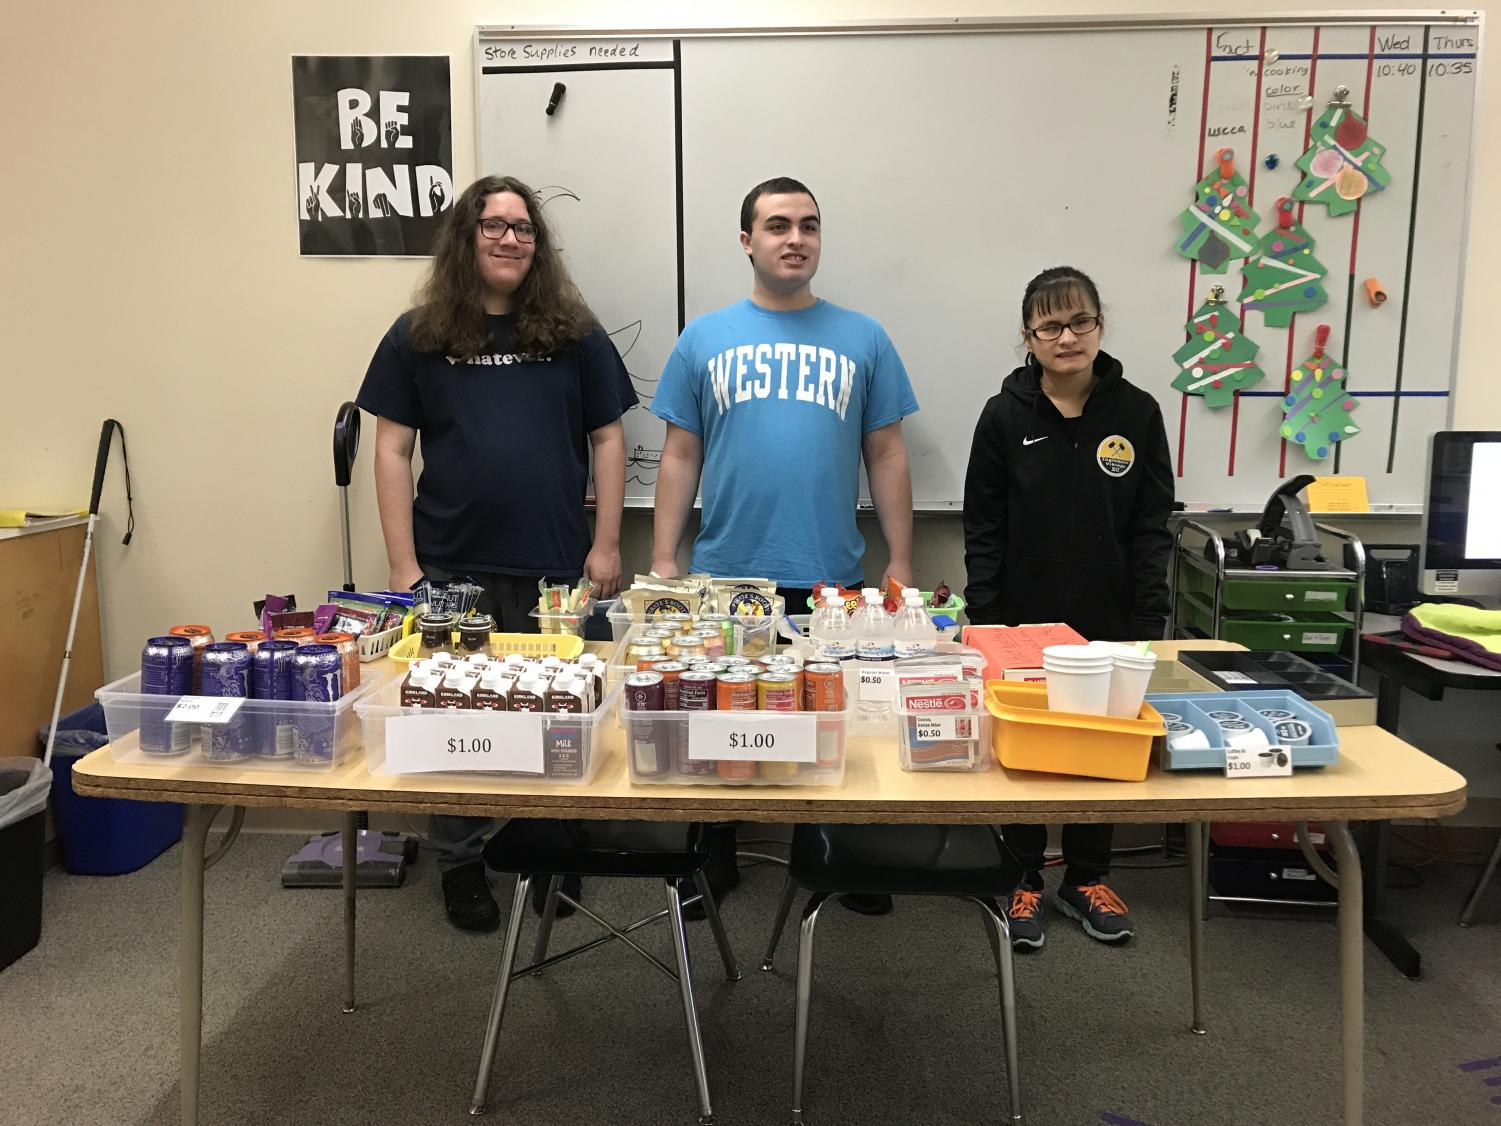 Senior Lucca Gusmao, junior John Pakkala and freshman Verada Ellet just opened the store for Monday, Dec. 16 during break. Gusmao's role is to take inventory of the store, which he said he enjoys. Photo by Aditi Jain